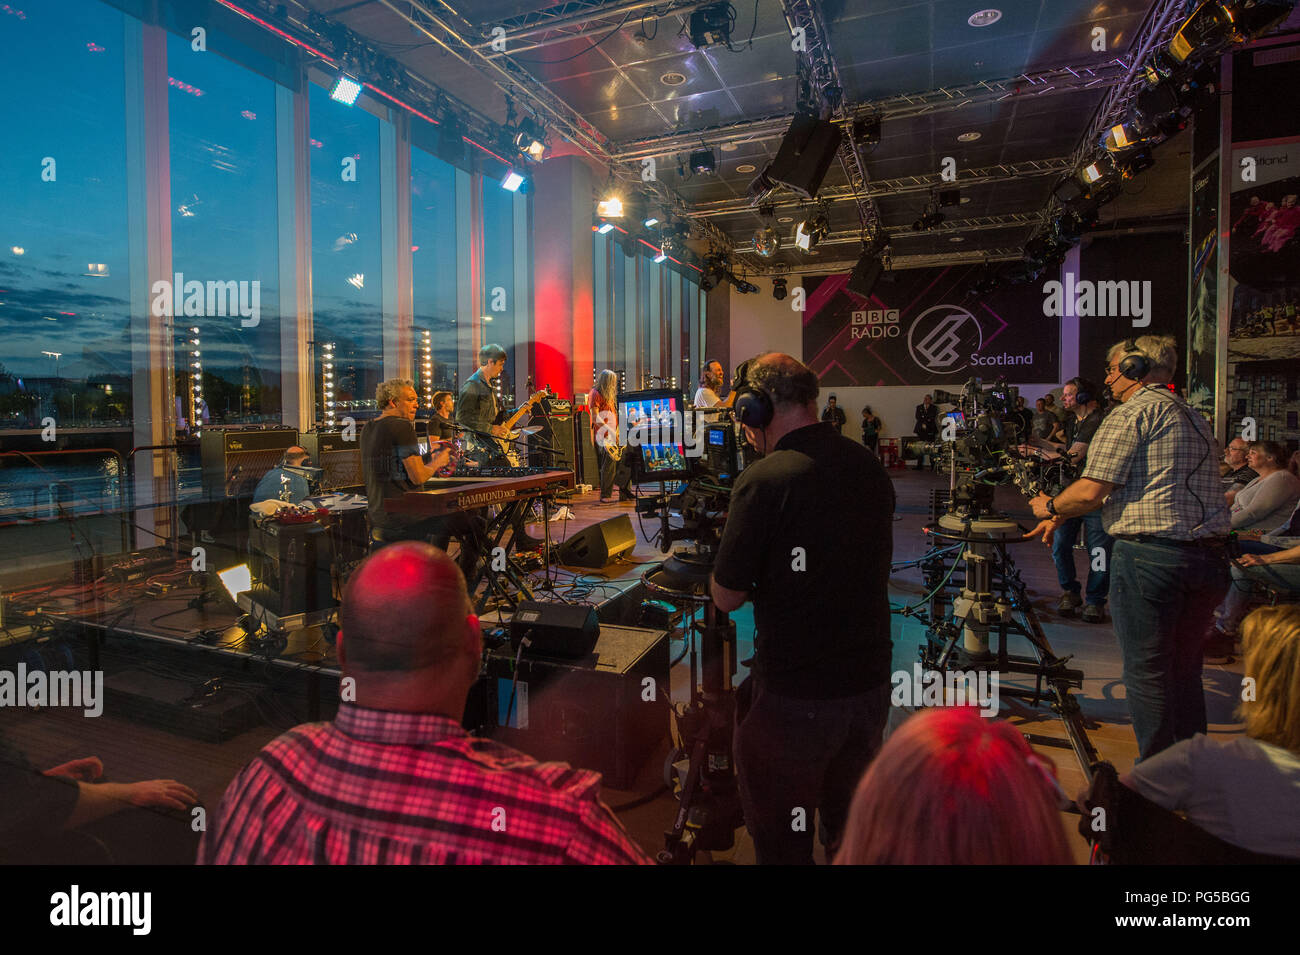 Rock band Reef play their final song of the set, The Quay Sessions, BBC Scotland Glasgow, 16th May 2018 - Stock Image